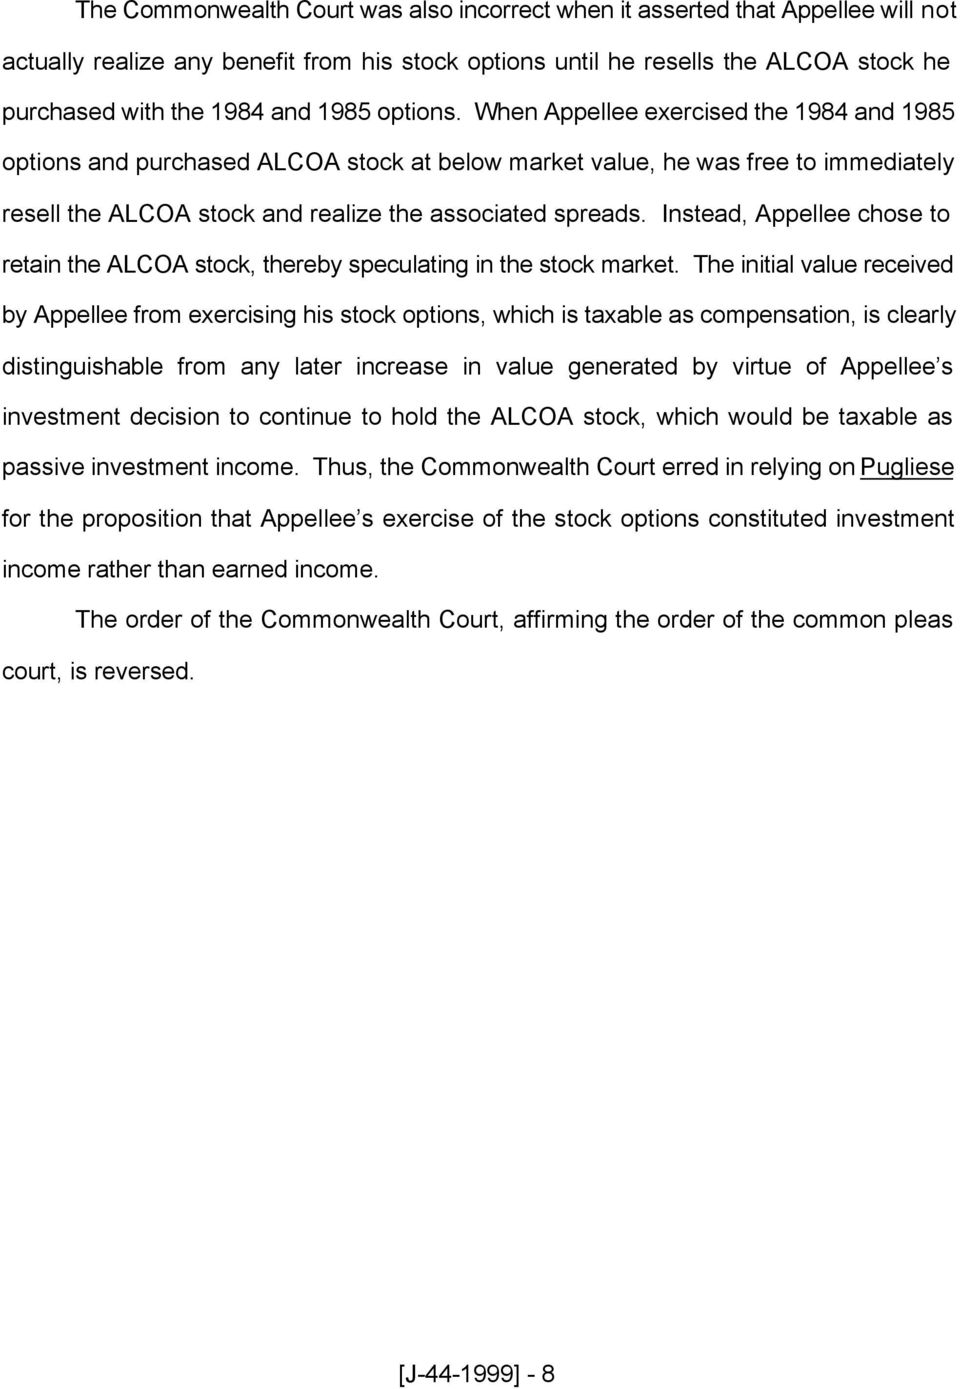 Instead, Appellee chose to retain the ALCOA stock, thereby speculating in the stock market.